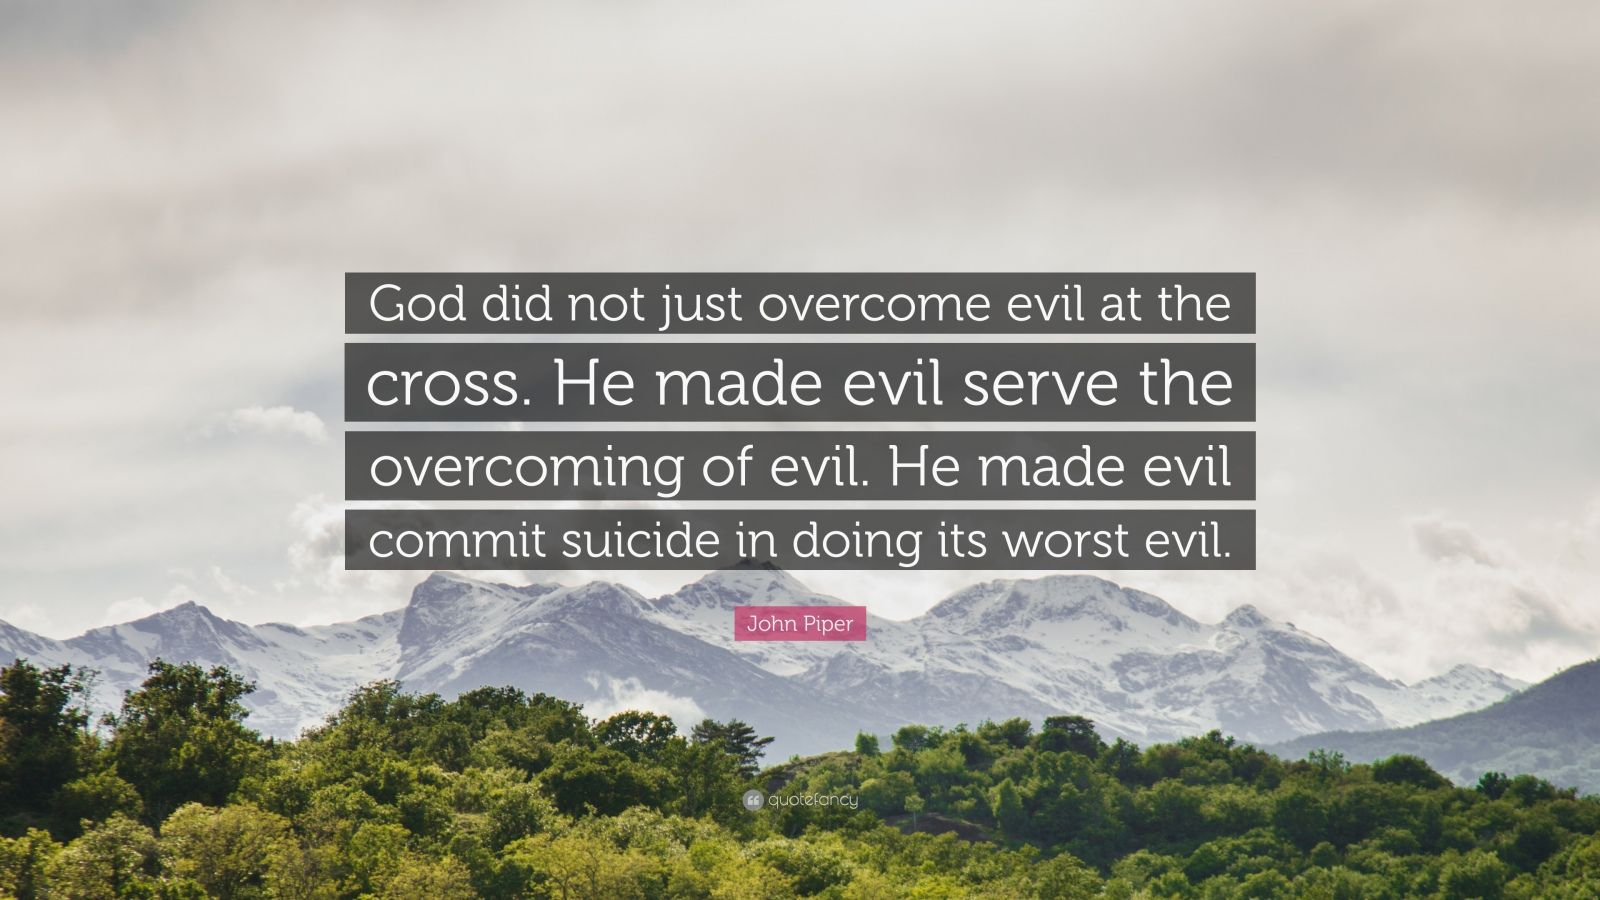 """John Piper Quote: """"God did not just overcome evil at the cross. He made evil serve the overcoming of evil. He made evil commit suicide in doing its worst evil."""""""